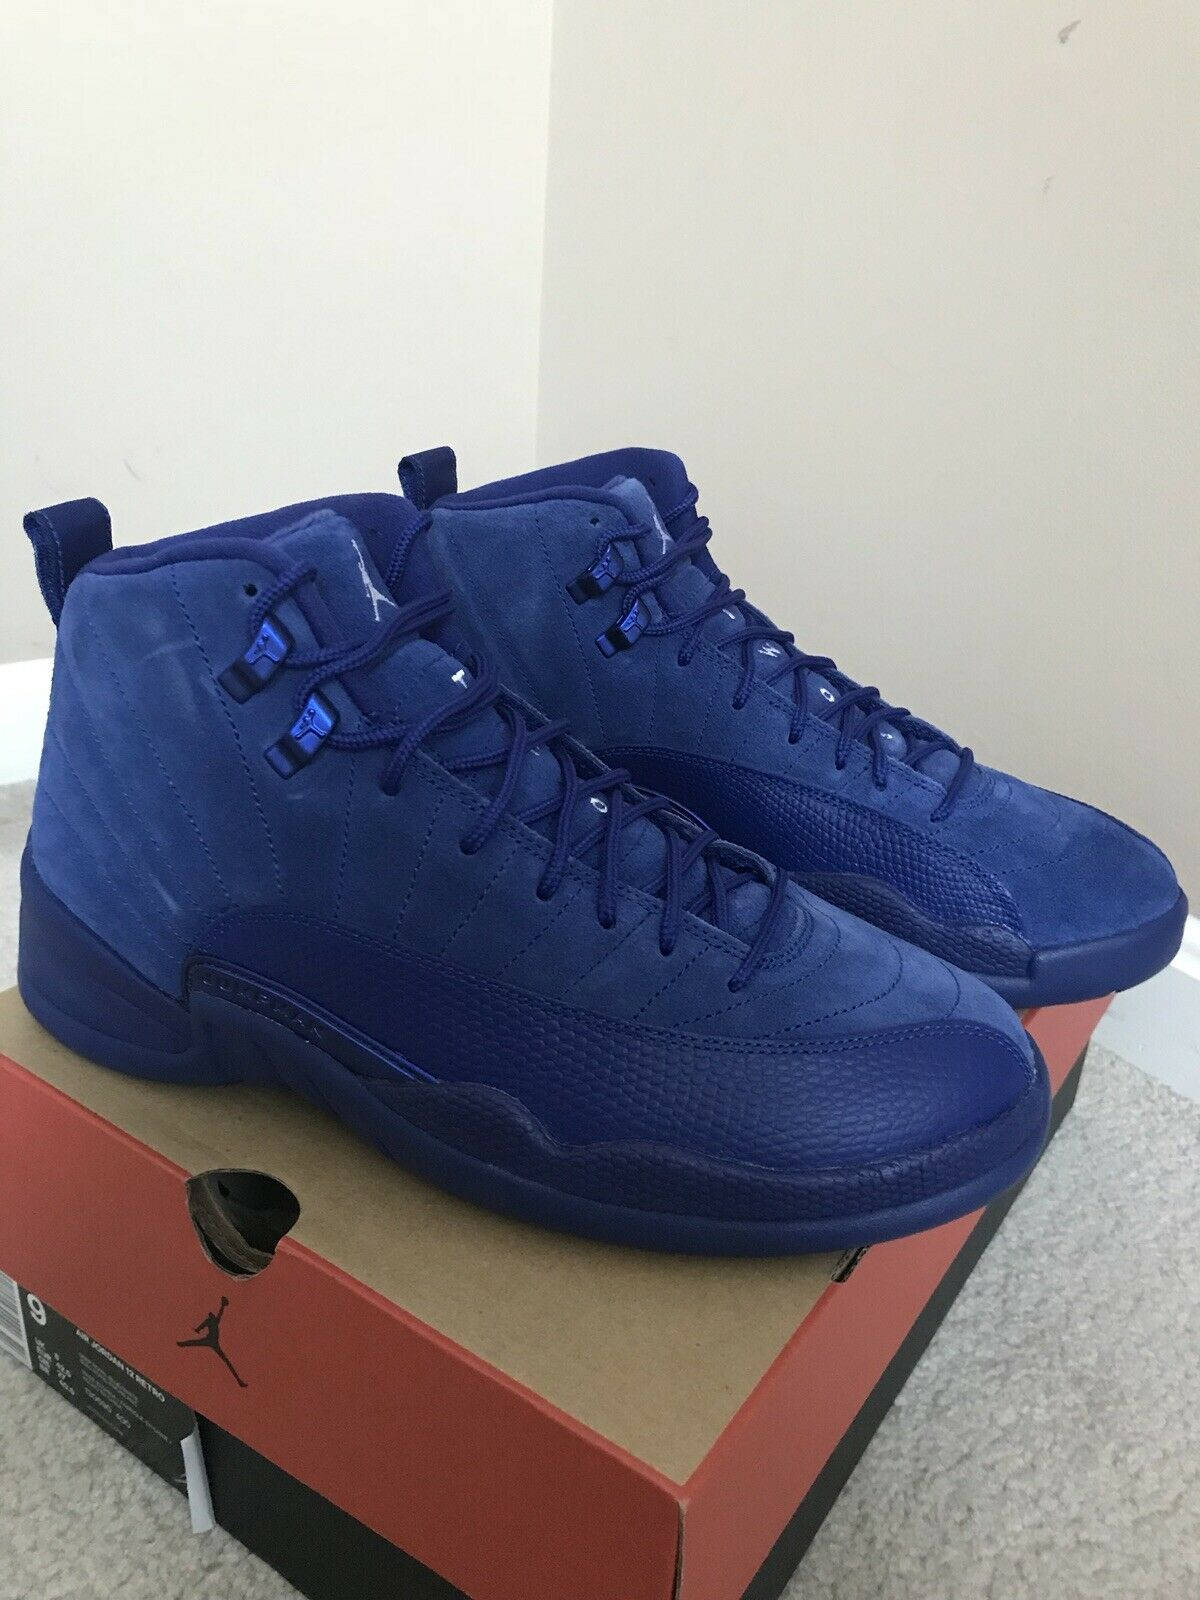 Jordan Retro 12 bluee suede 9 Taxi Playoffs Low Concord Red Got Game Navy Royal 5